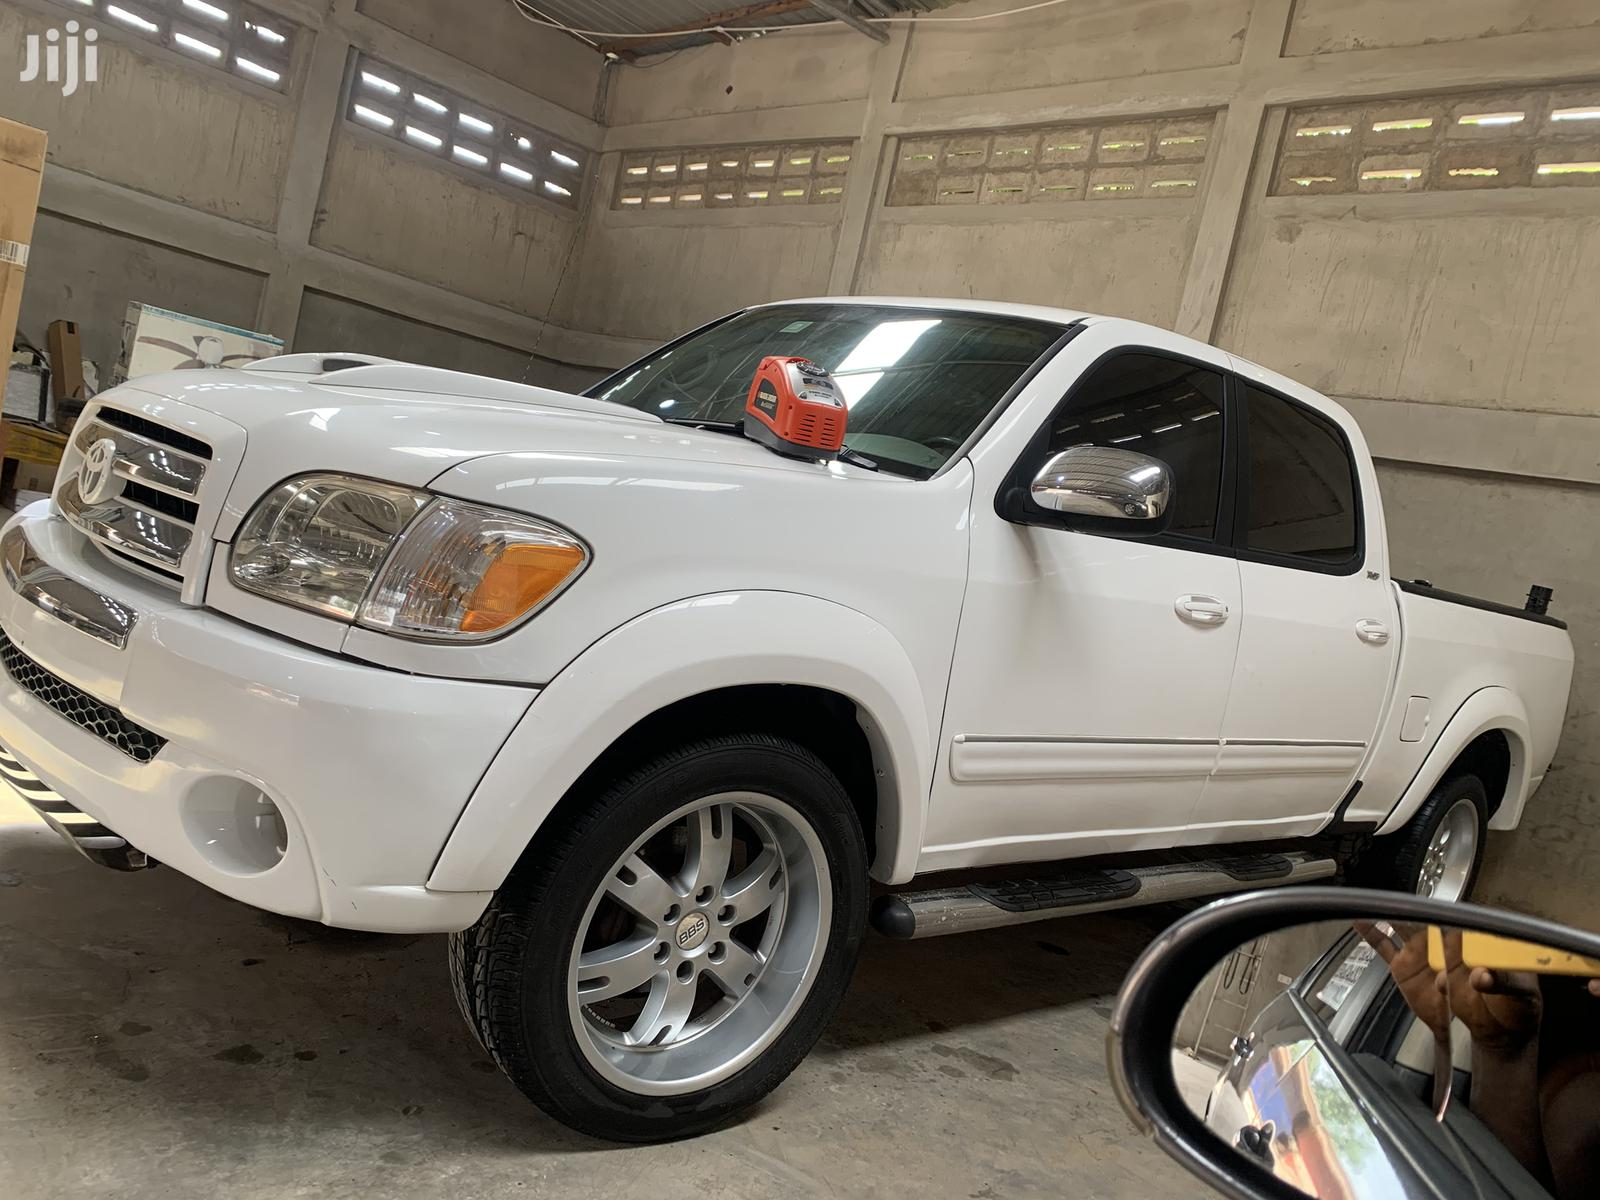 Archive: Toyota Tundra Regular Cab 2006 White